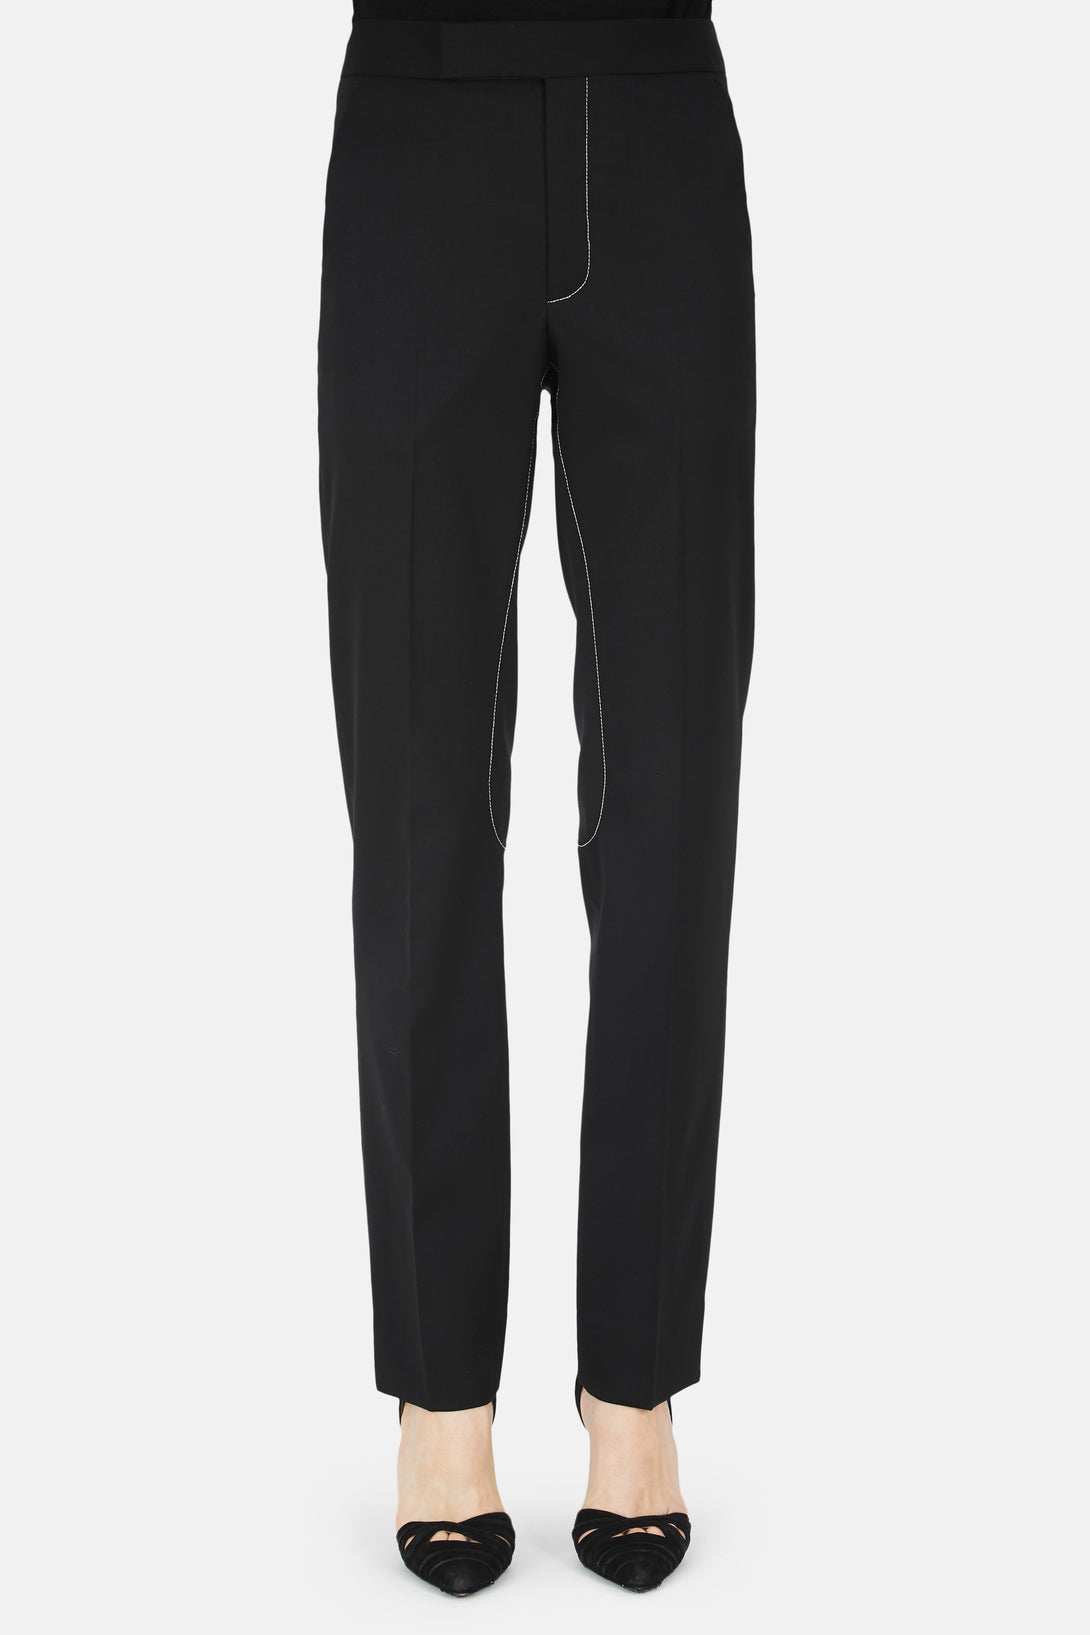 Top Stitch Riding Trouser - Black